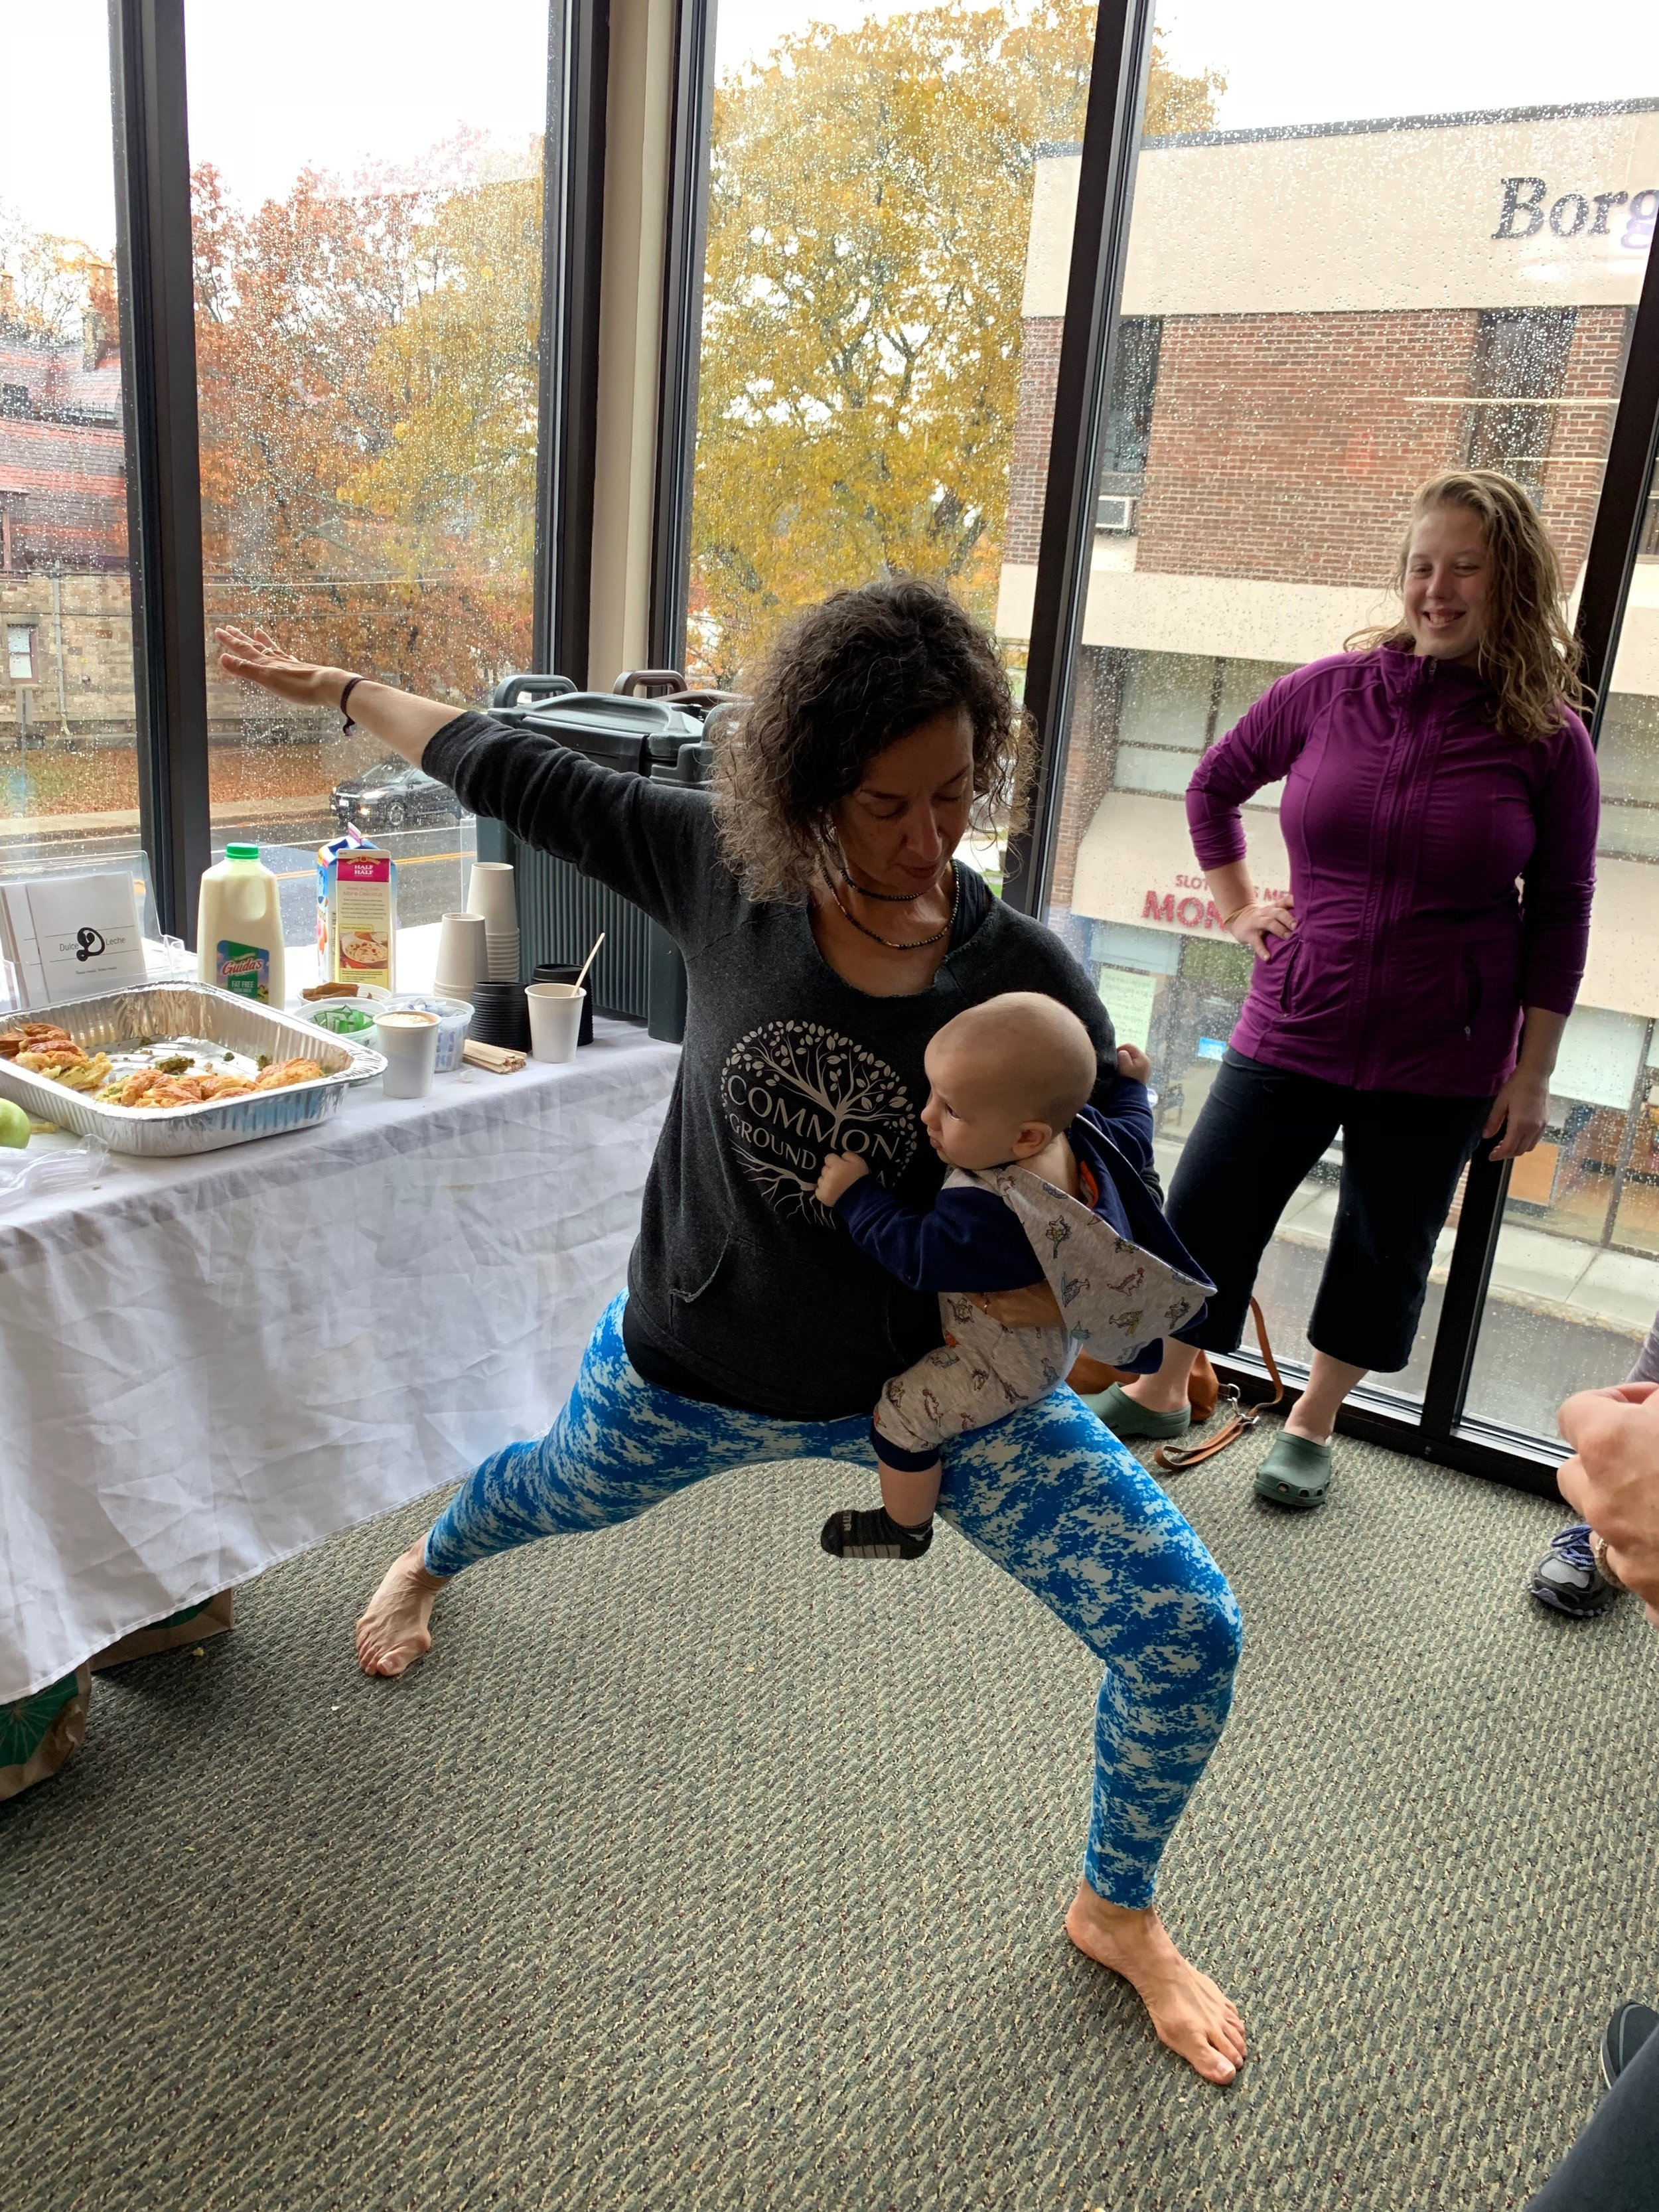 Carrie doing yoga with baby Sawyer at CGY's Fall 2018 Open House